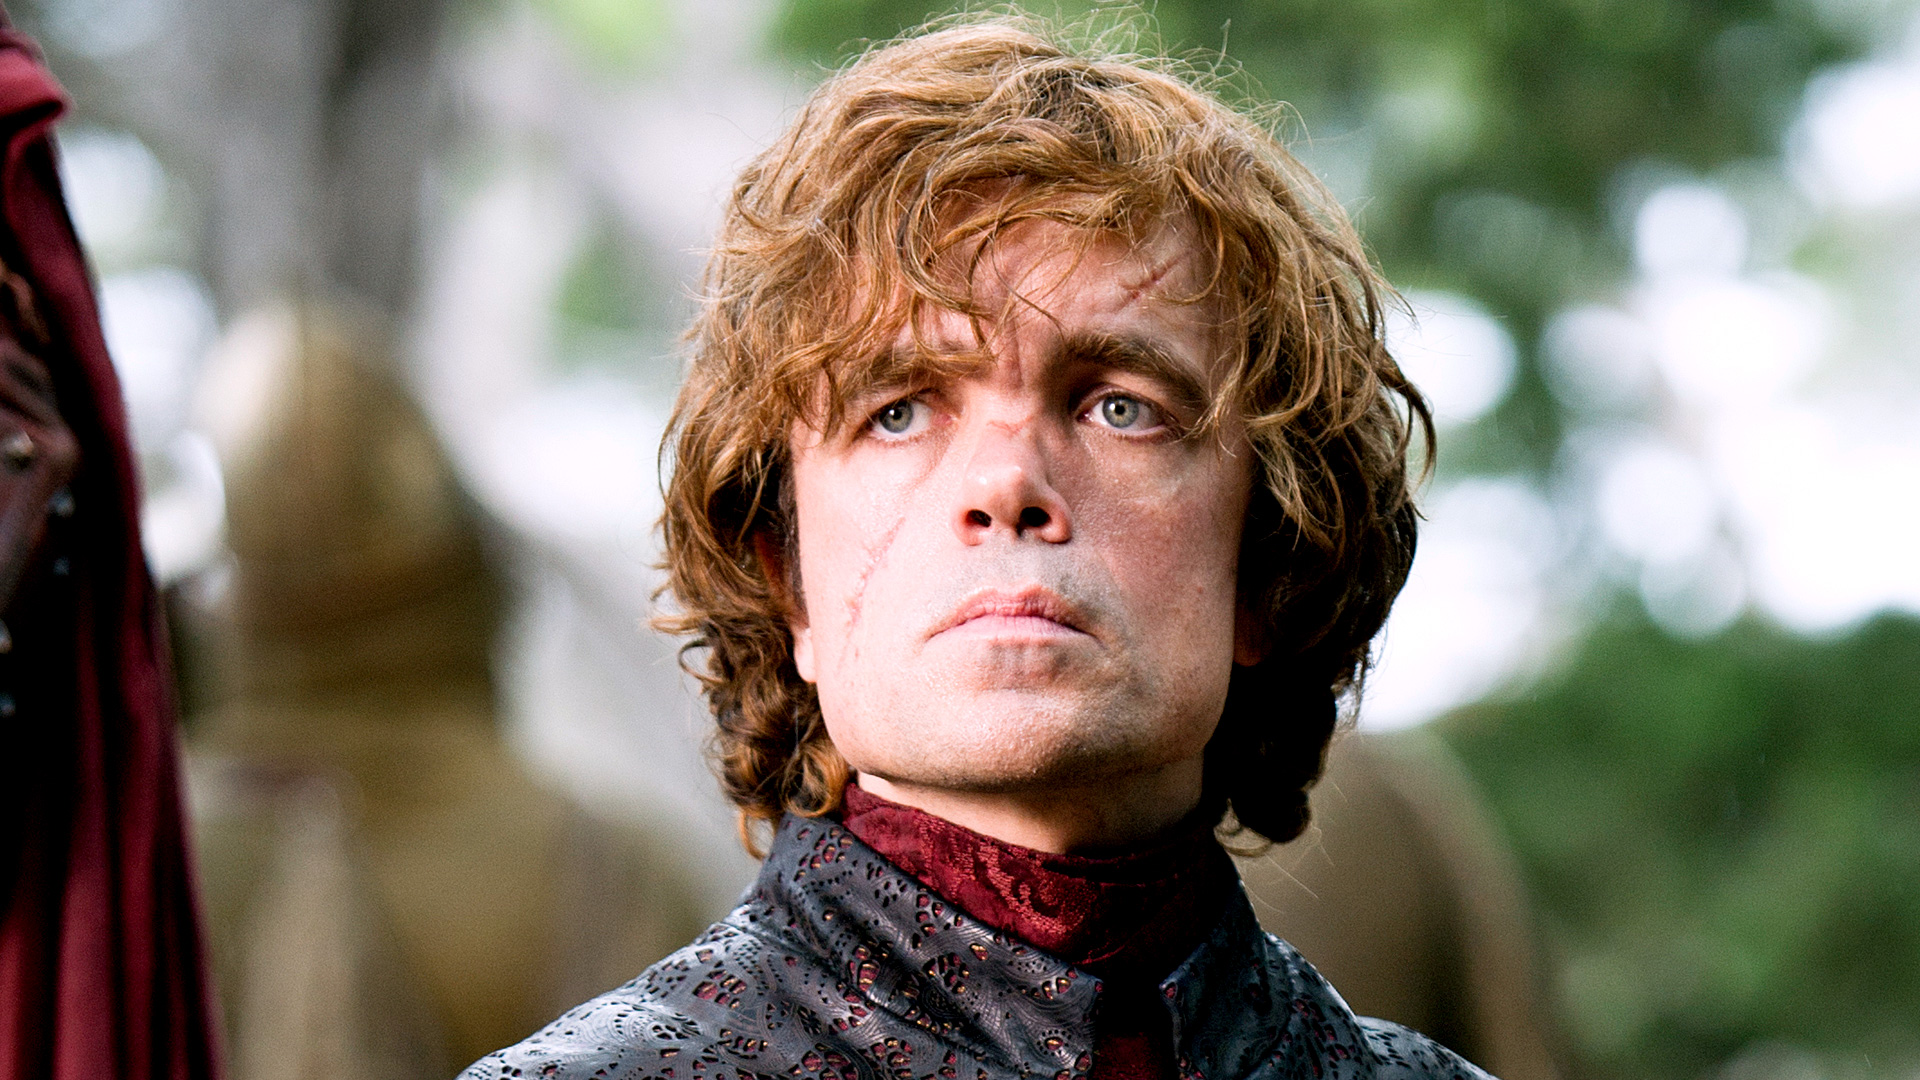 Game of Thrones; Small; Dwarf; Powerful